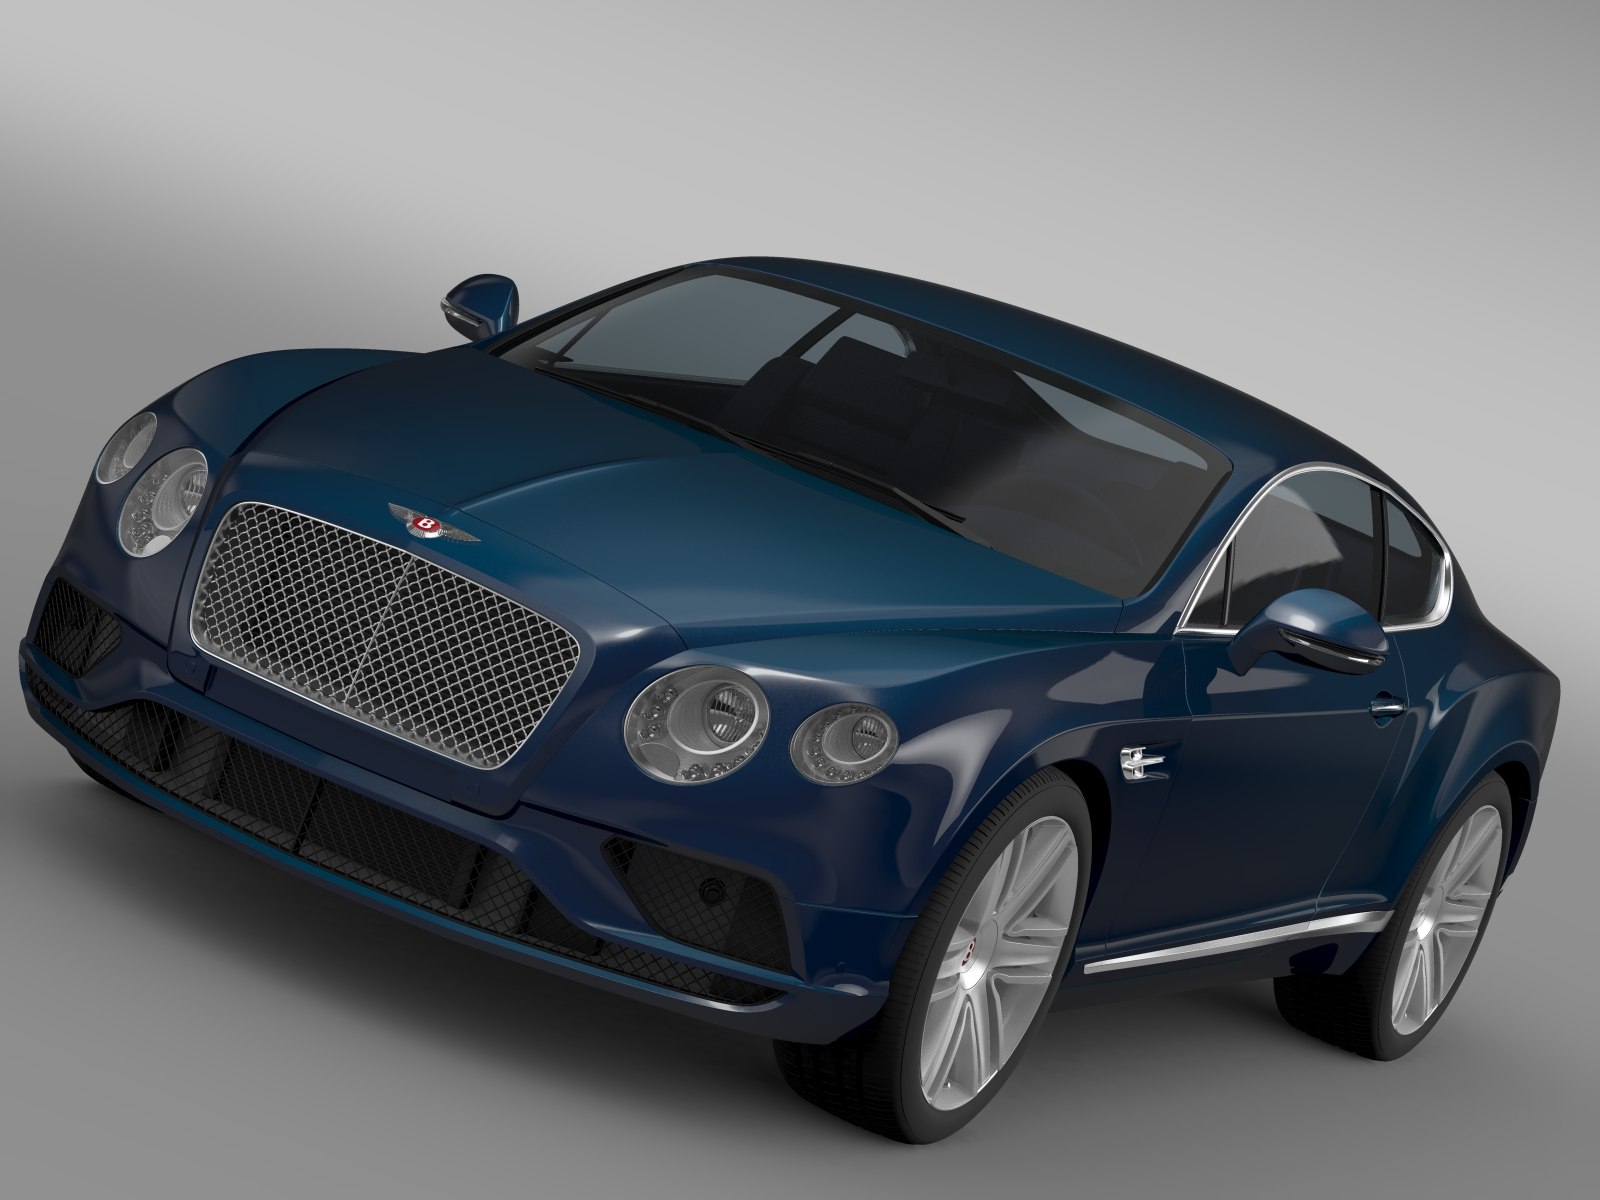 bentley continental gt v8 2015 car 3d model 3ds max fbx c4d lwo ma mb hrc xsi obj 210991